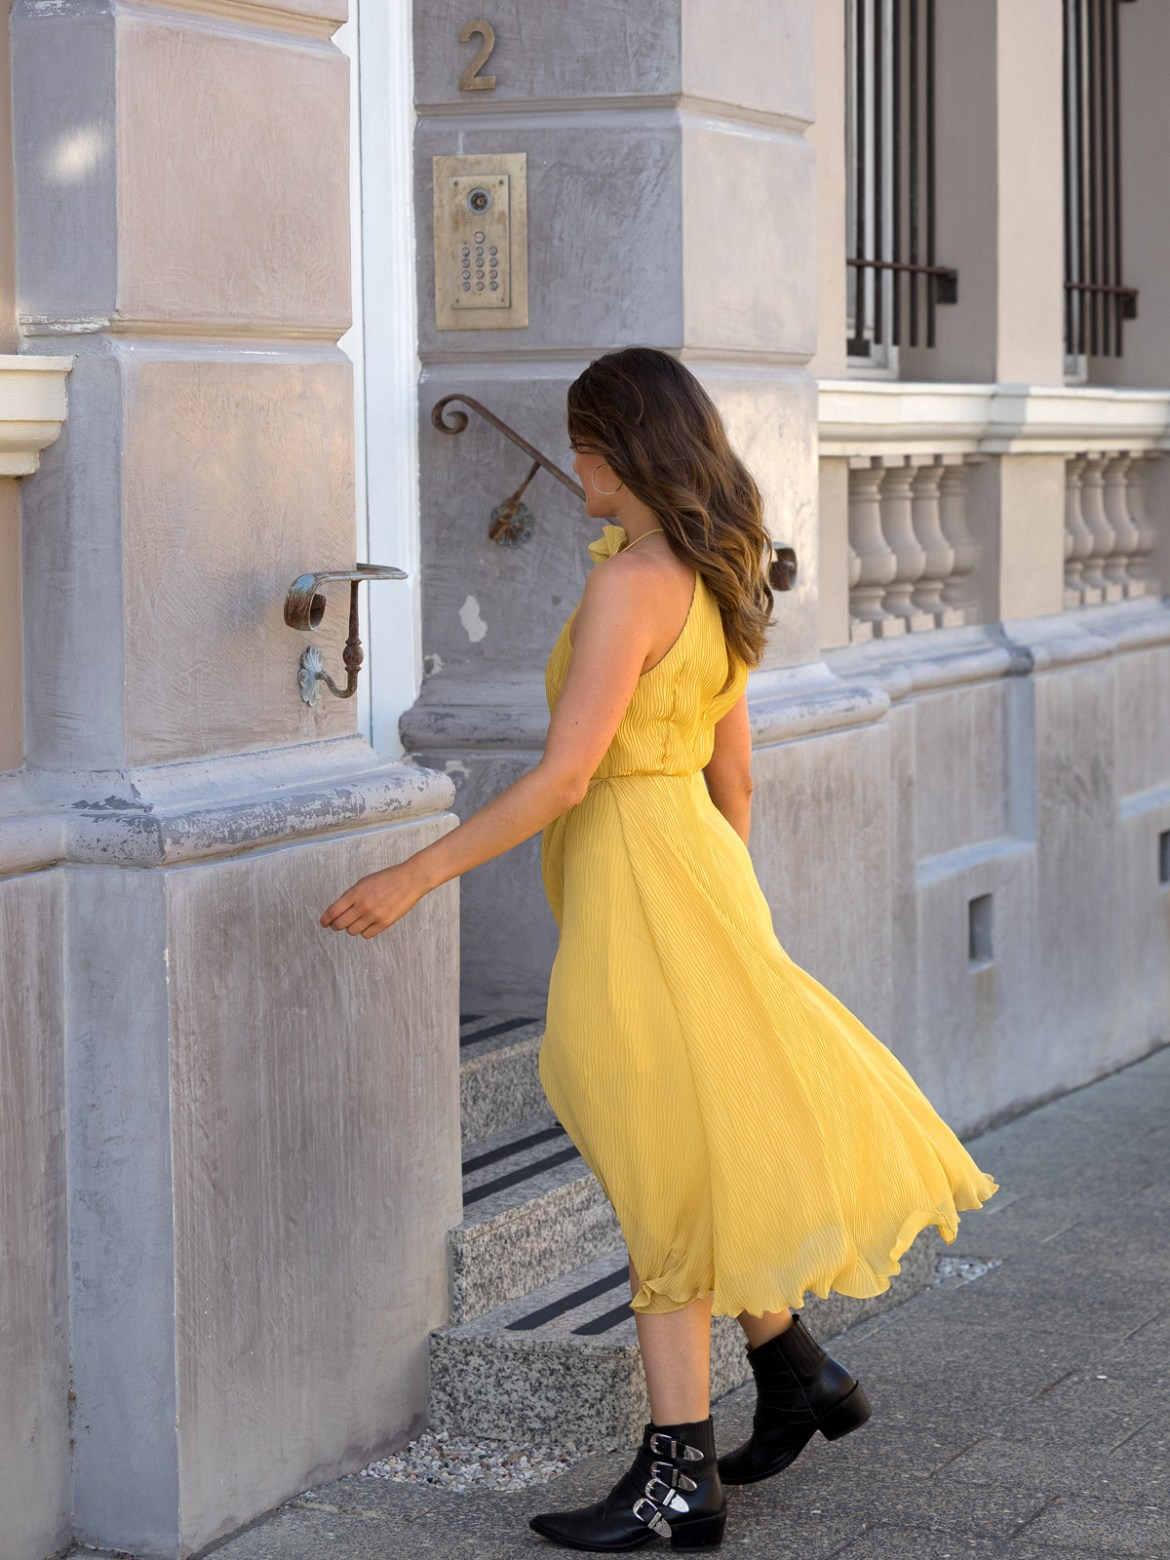 jenelle witty from fashion blog inspiring wit wearing mustard yellow dress called Skylines Dress from Keepsake the Label Valentine's Day 2018 edit with Toga Pulla boots